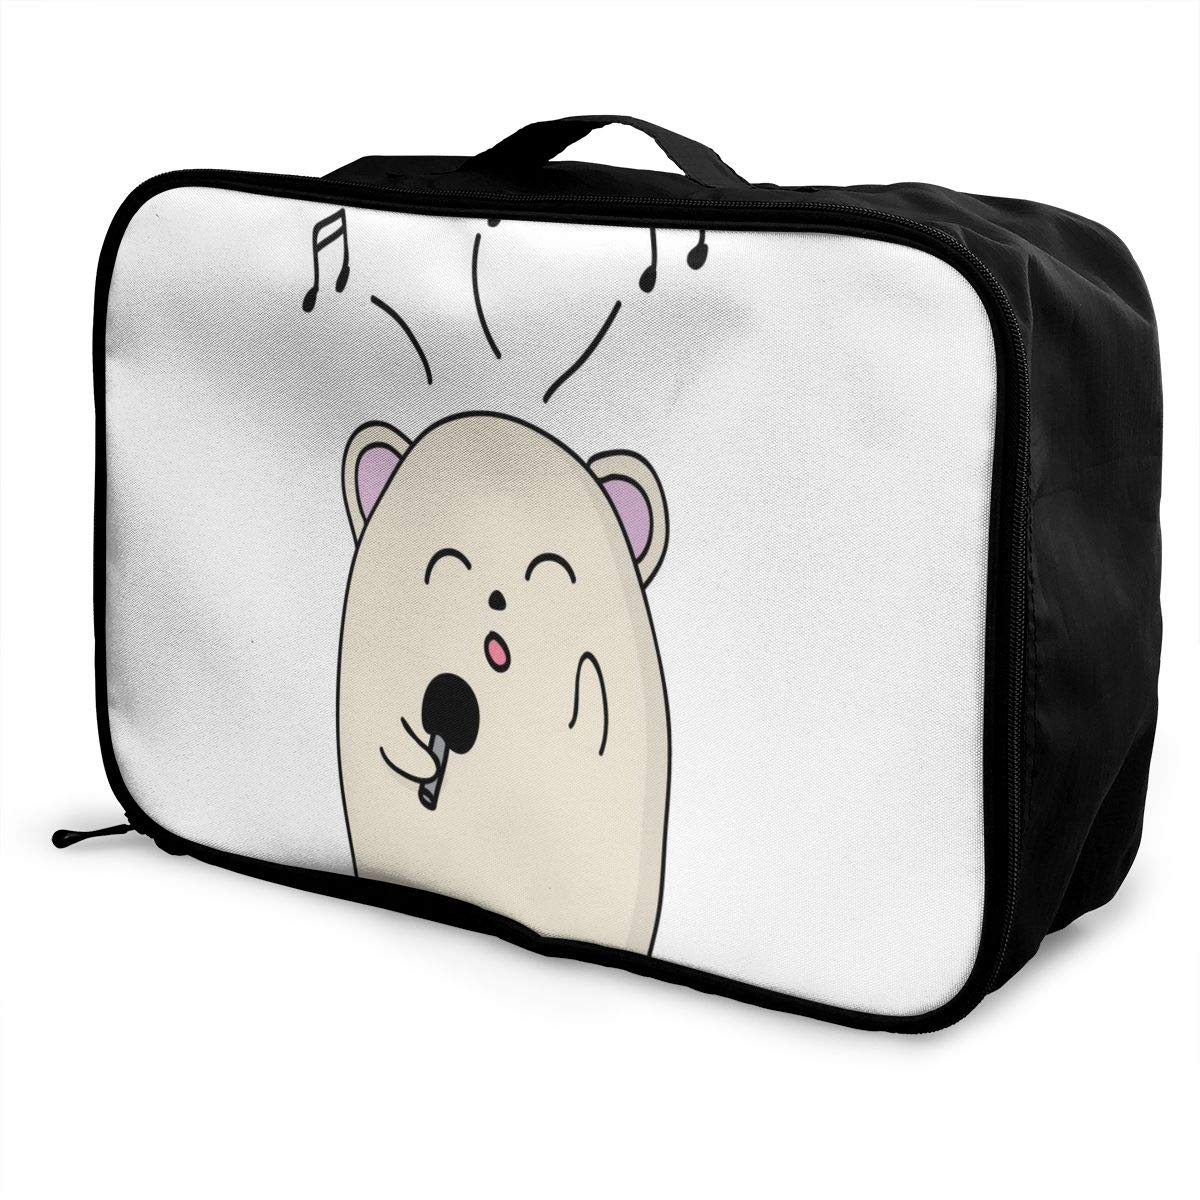 Lightweight Large Capacity Portable Luggage Bag Cute Animal Singing Travel Waterproof Foldable Storage Carry Tote Bag